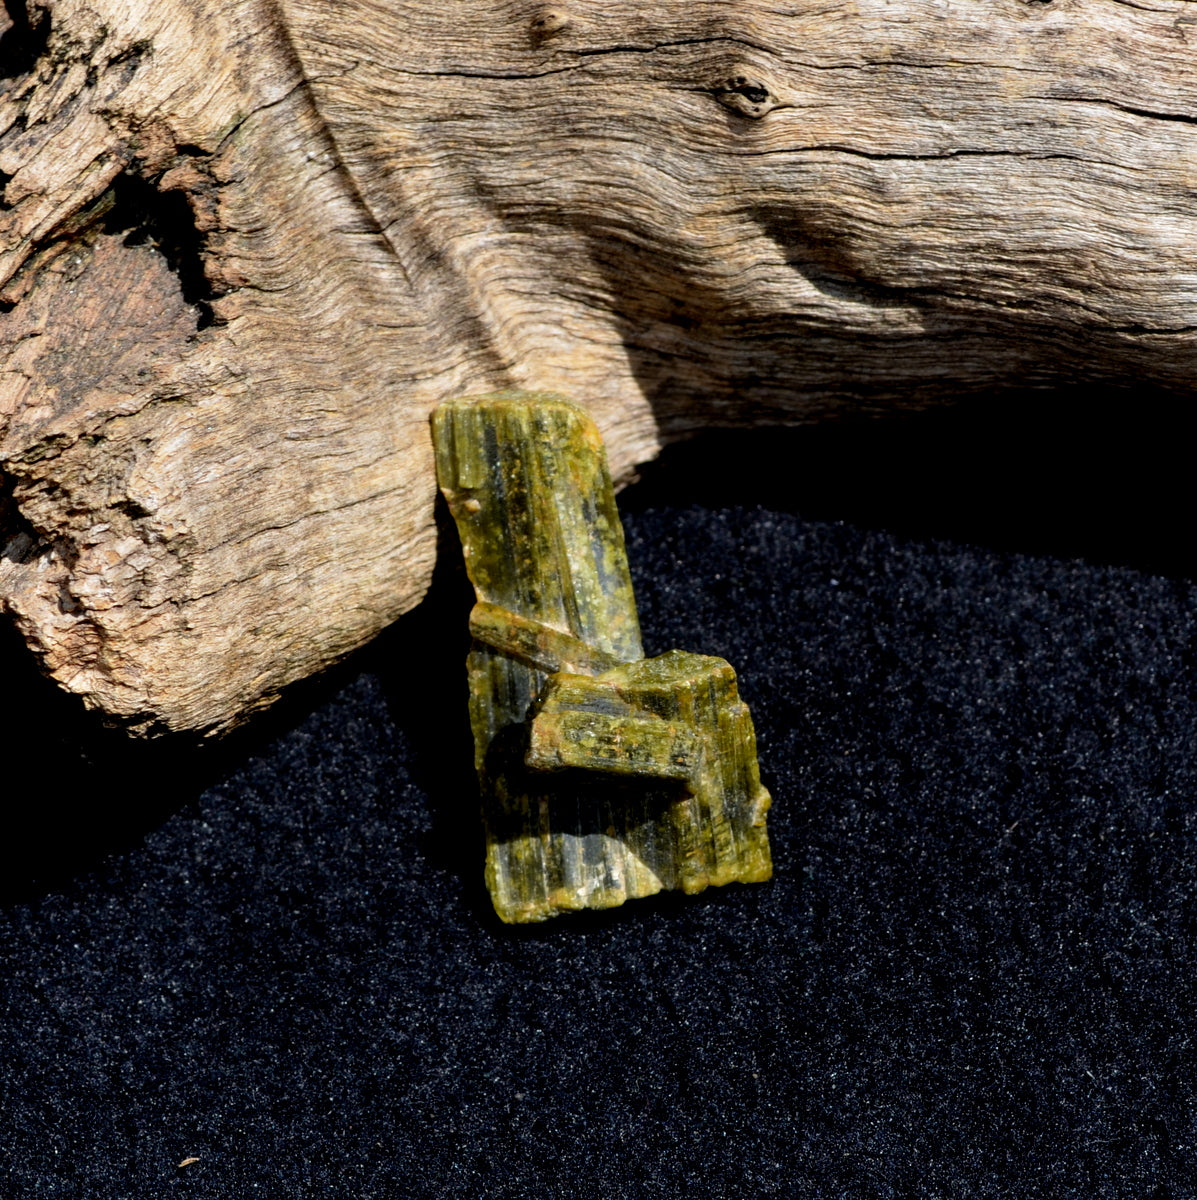 Epidote Crystals Specimen - Cleansing Detoxing Nature Healing - Shop Now at Illiom Crystals - Afterpay Available